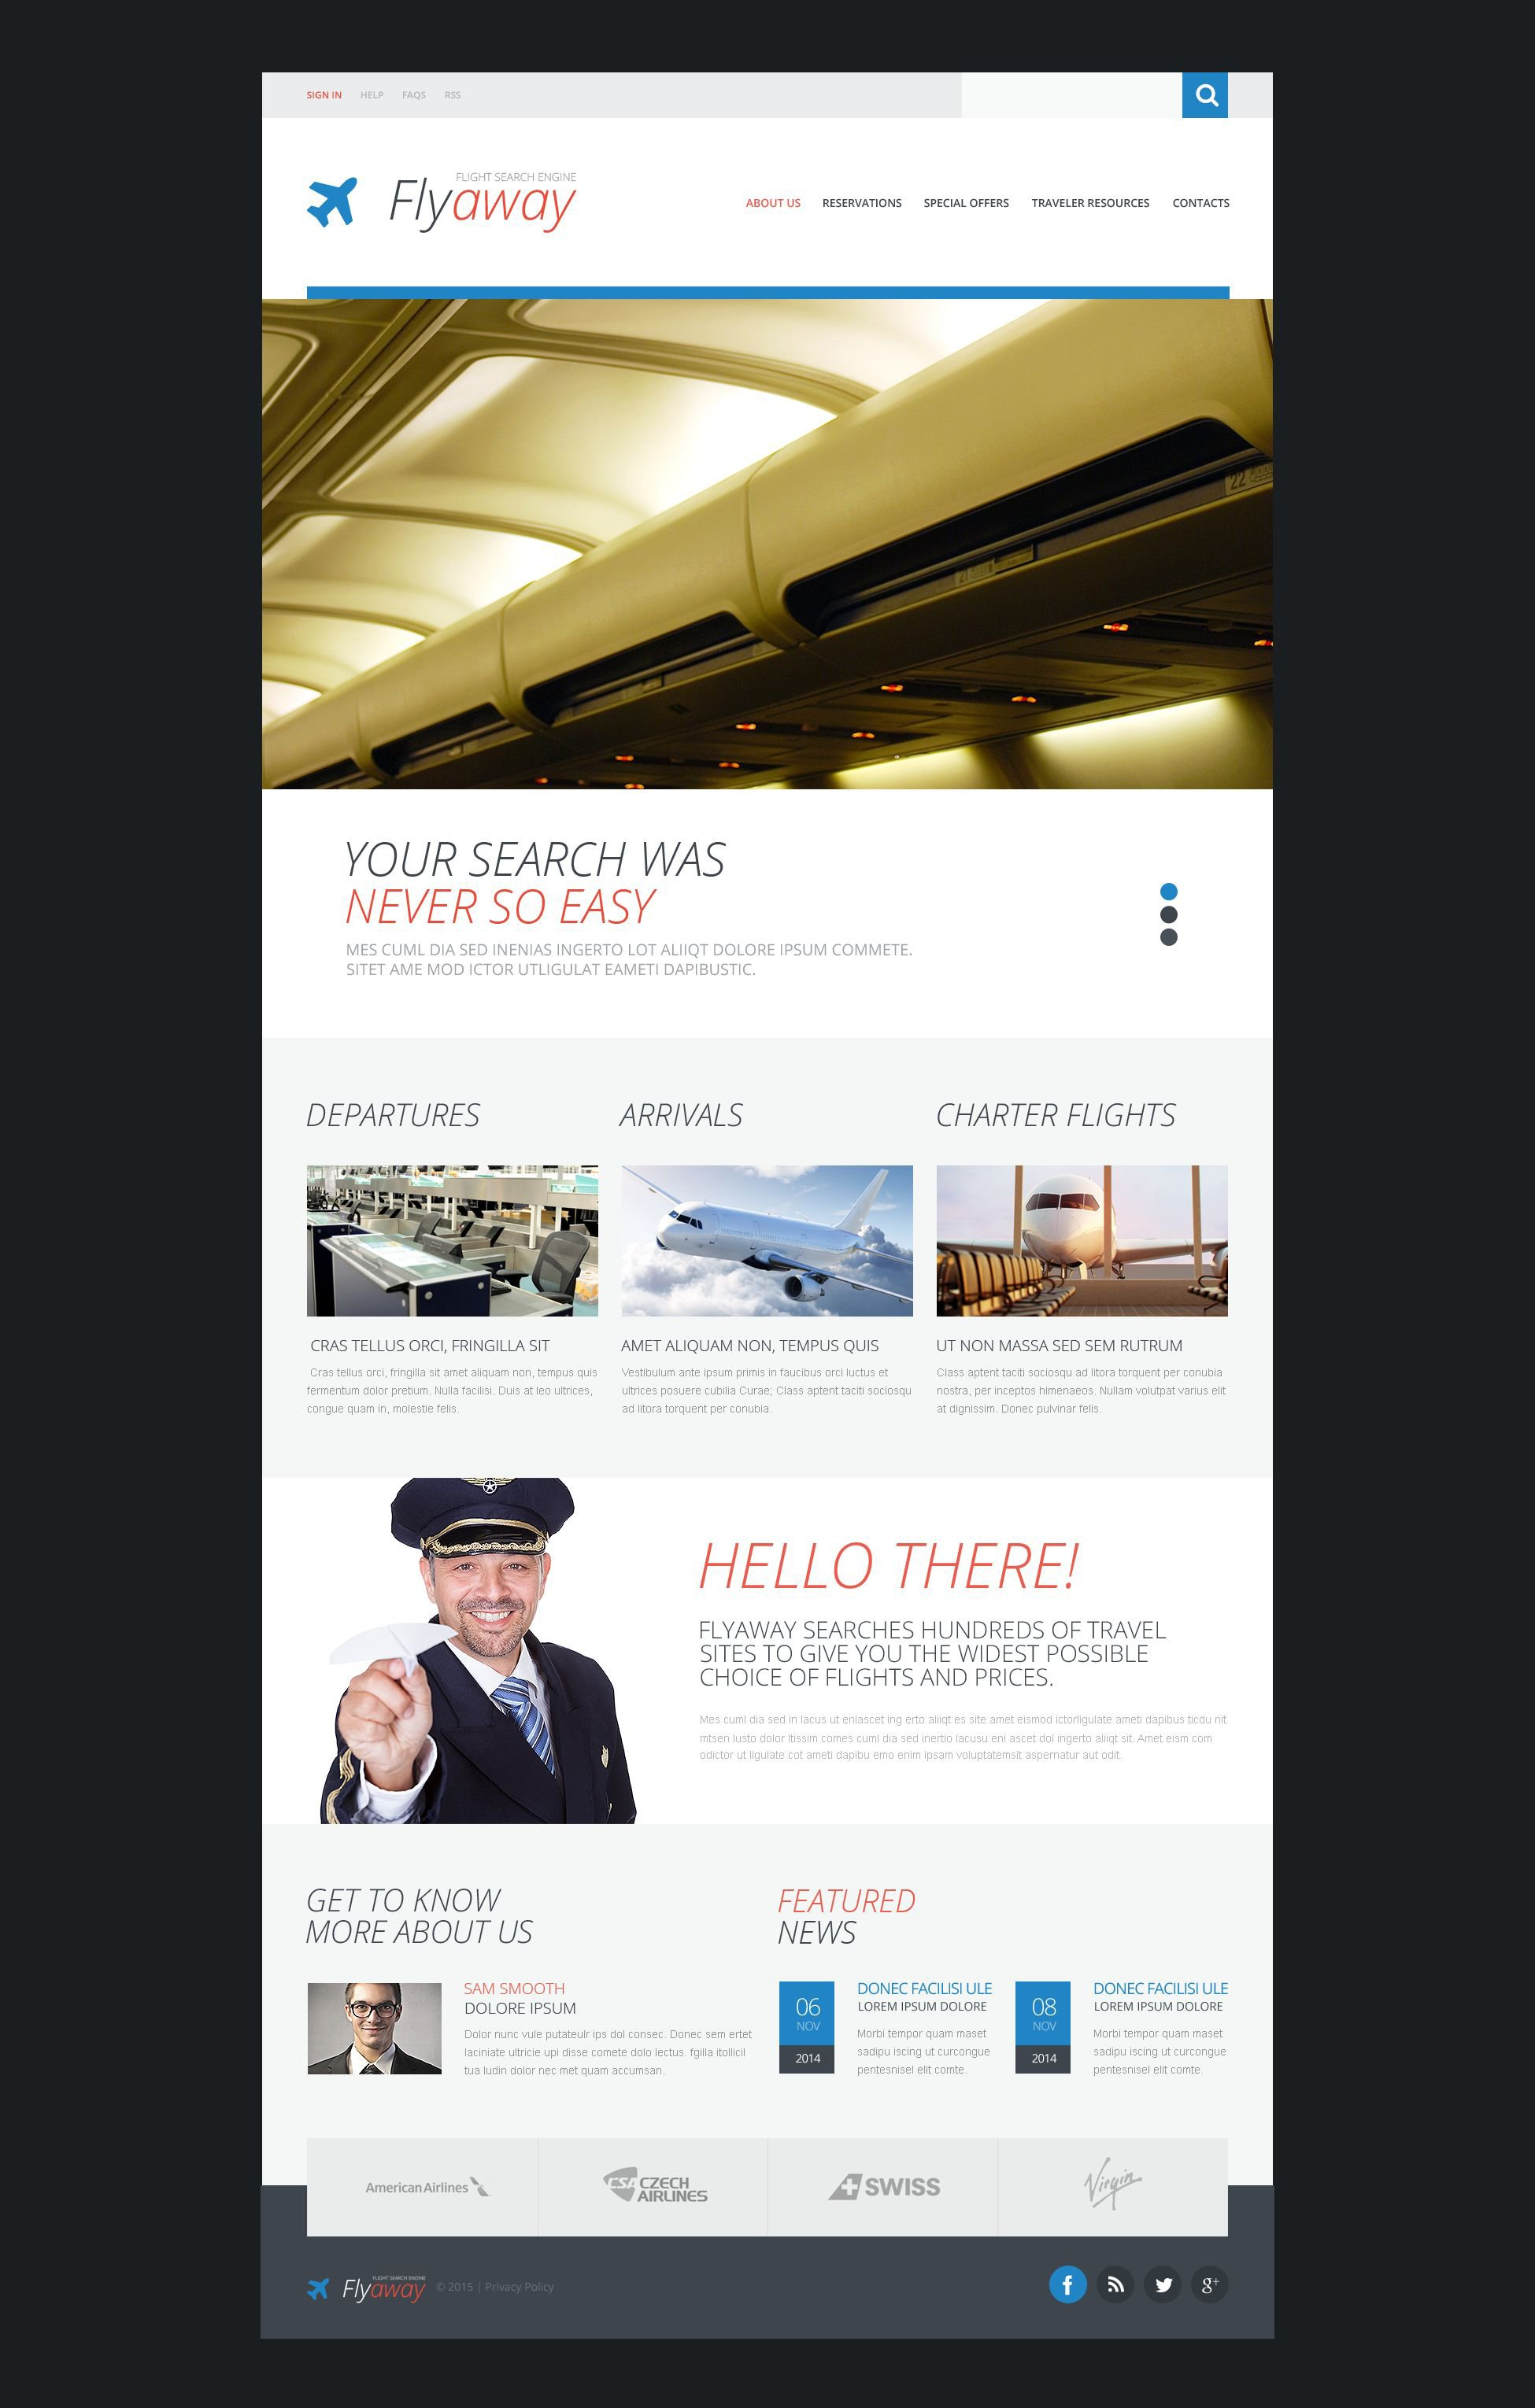 The Flyaway Airlines Airport Company Responsive Javascript Animated Design 53574, one of the best website templates of its kind (travel, most popular), also known as Flyaway airlines airport company website template, flight hotels website template, car website template, citybreaks website template, country website template, departure website template, destination website template, airport website template, returning website template, plan website template, booking website template, ticket website template, arrival website template, reservation website template, travel website template, vacation website template, stewardess website template, offers website template, tours website template, resort website template, location website template, authorization website template, guide website template, visa website template, discount website template, liner and related with Flyaway airlines airport company, flight hotels, car, citybreaks, country, departure, destination, airport, returning, plan, booking, ticket, arrival, reservation, travel, vacation, stewardess, offers, tours, resort, location, authorization, guide, visa, discount, liner, etc.